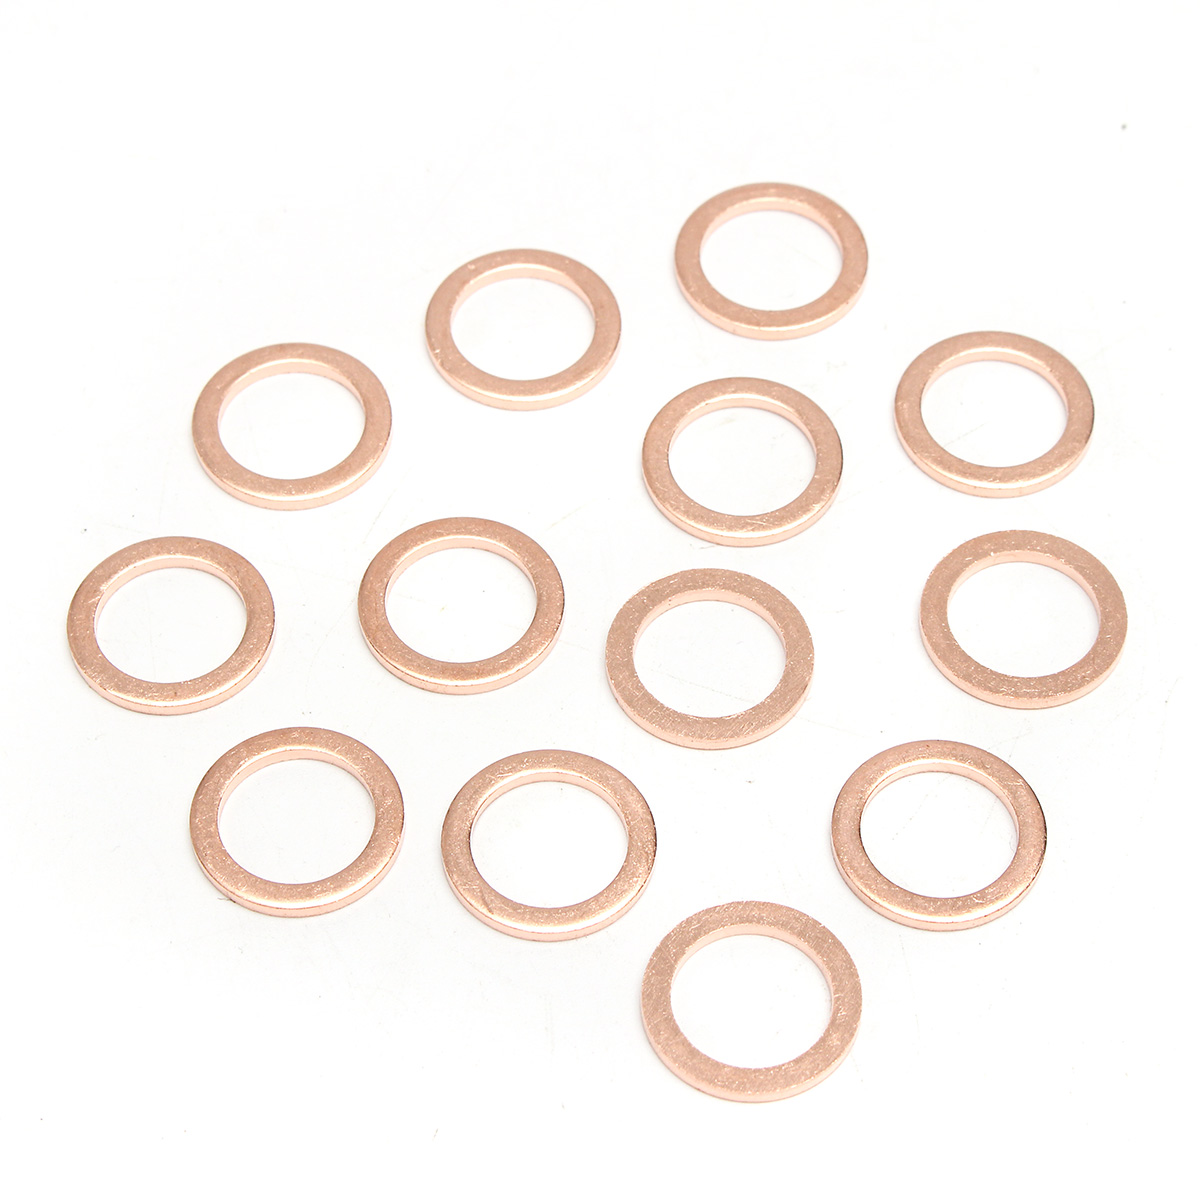 568pcs 30 Sizes Metric Washers Red Copper Flat Ring Gaskets Assortment Set Kit